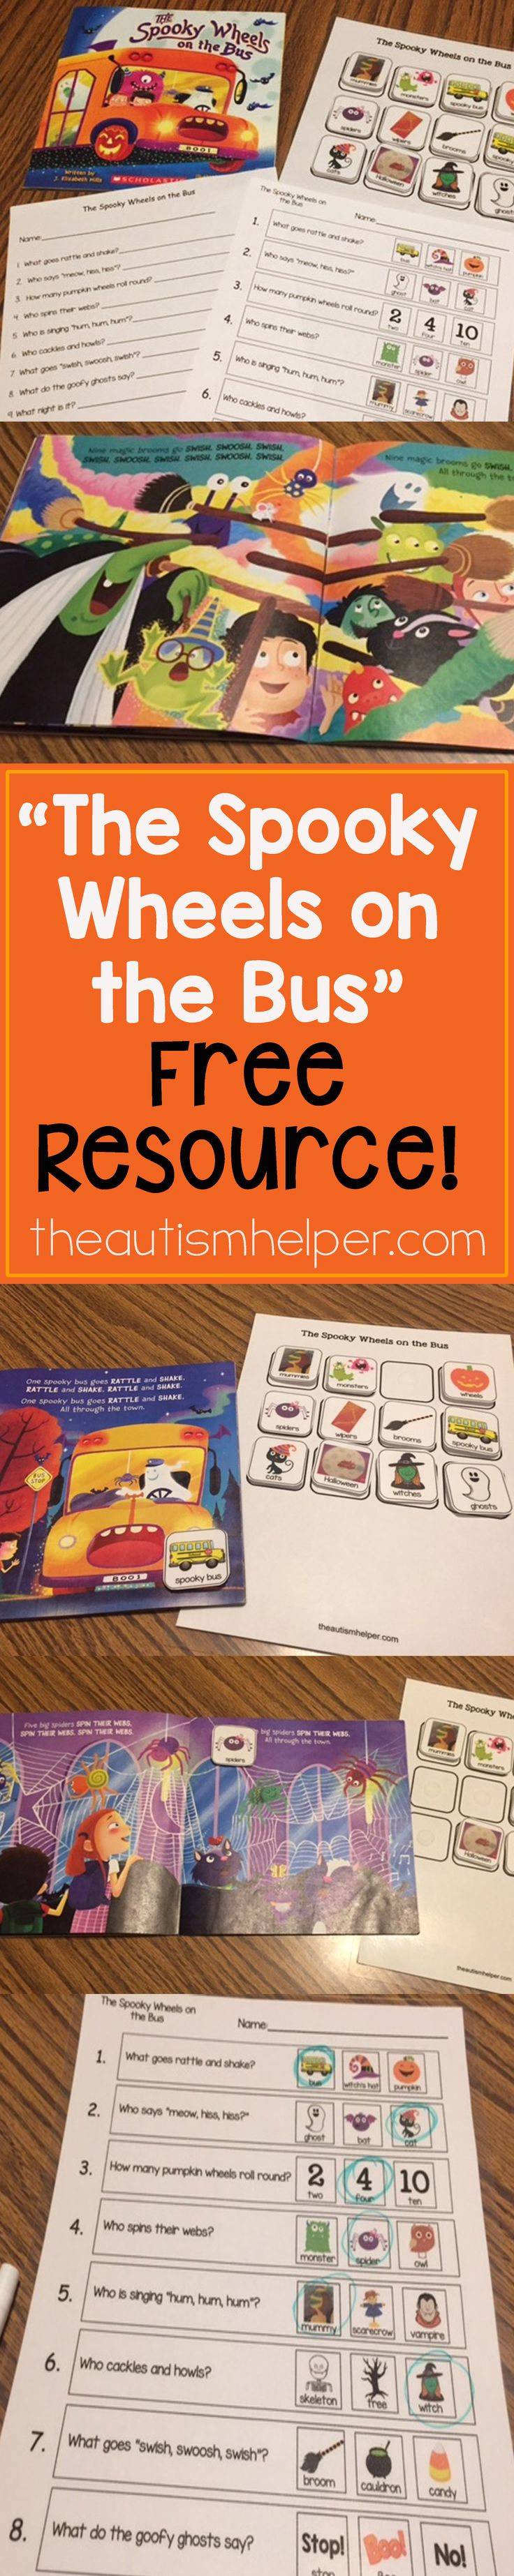 """The Spooky Wheels on the Bus"" kicks off Halloween activities in Speech Therapy. We're sharing FREE book pictures & questions on the blog! From theautismhelper.com #theautismhelper"